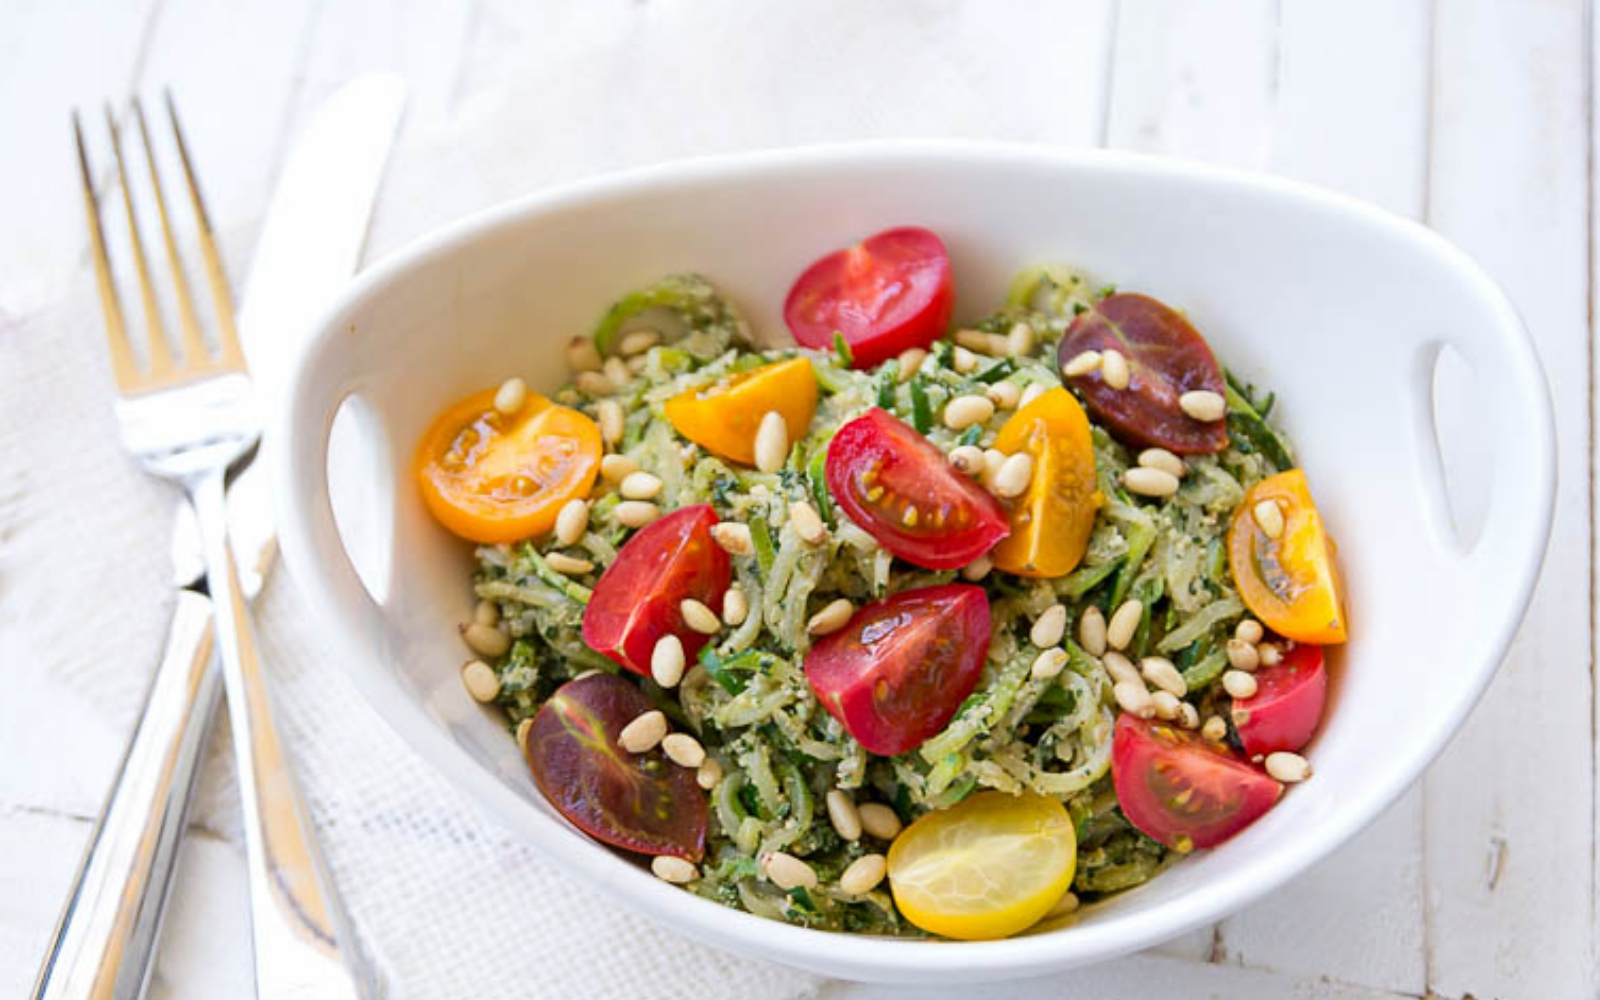 Vegan Zucchini Noodles With Spicy Kale and Walnut Pesto